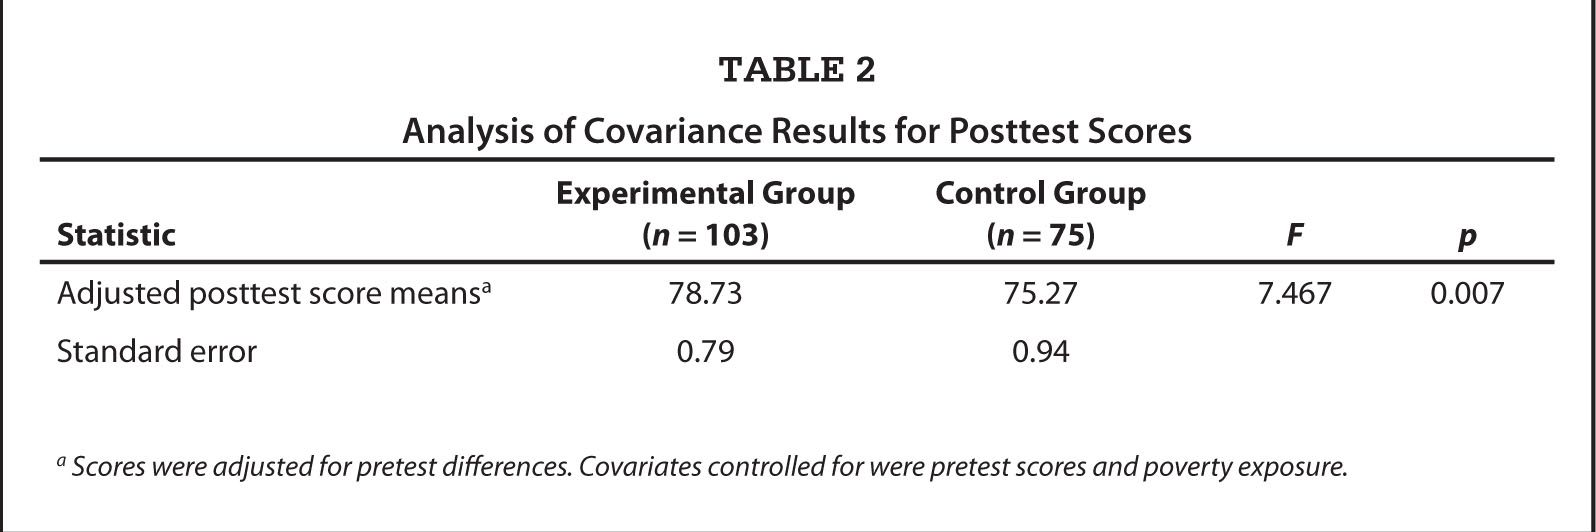 Analysis of Covariance Results for Posttest Scores